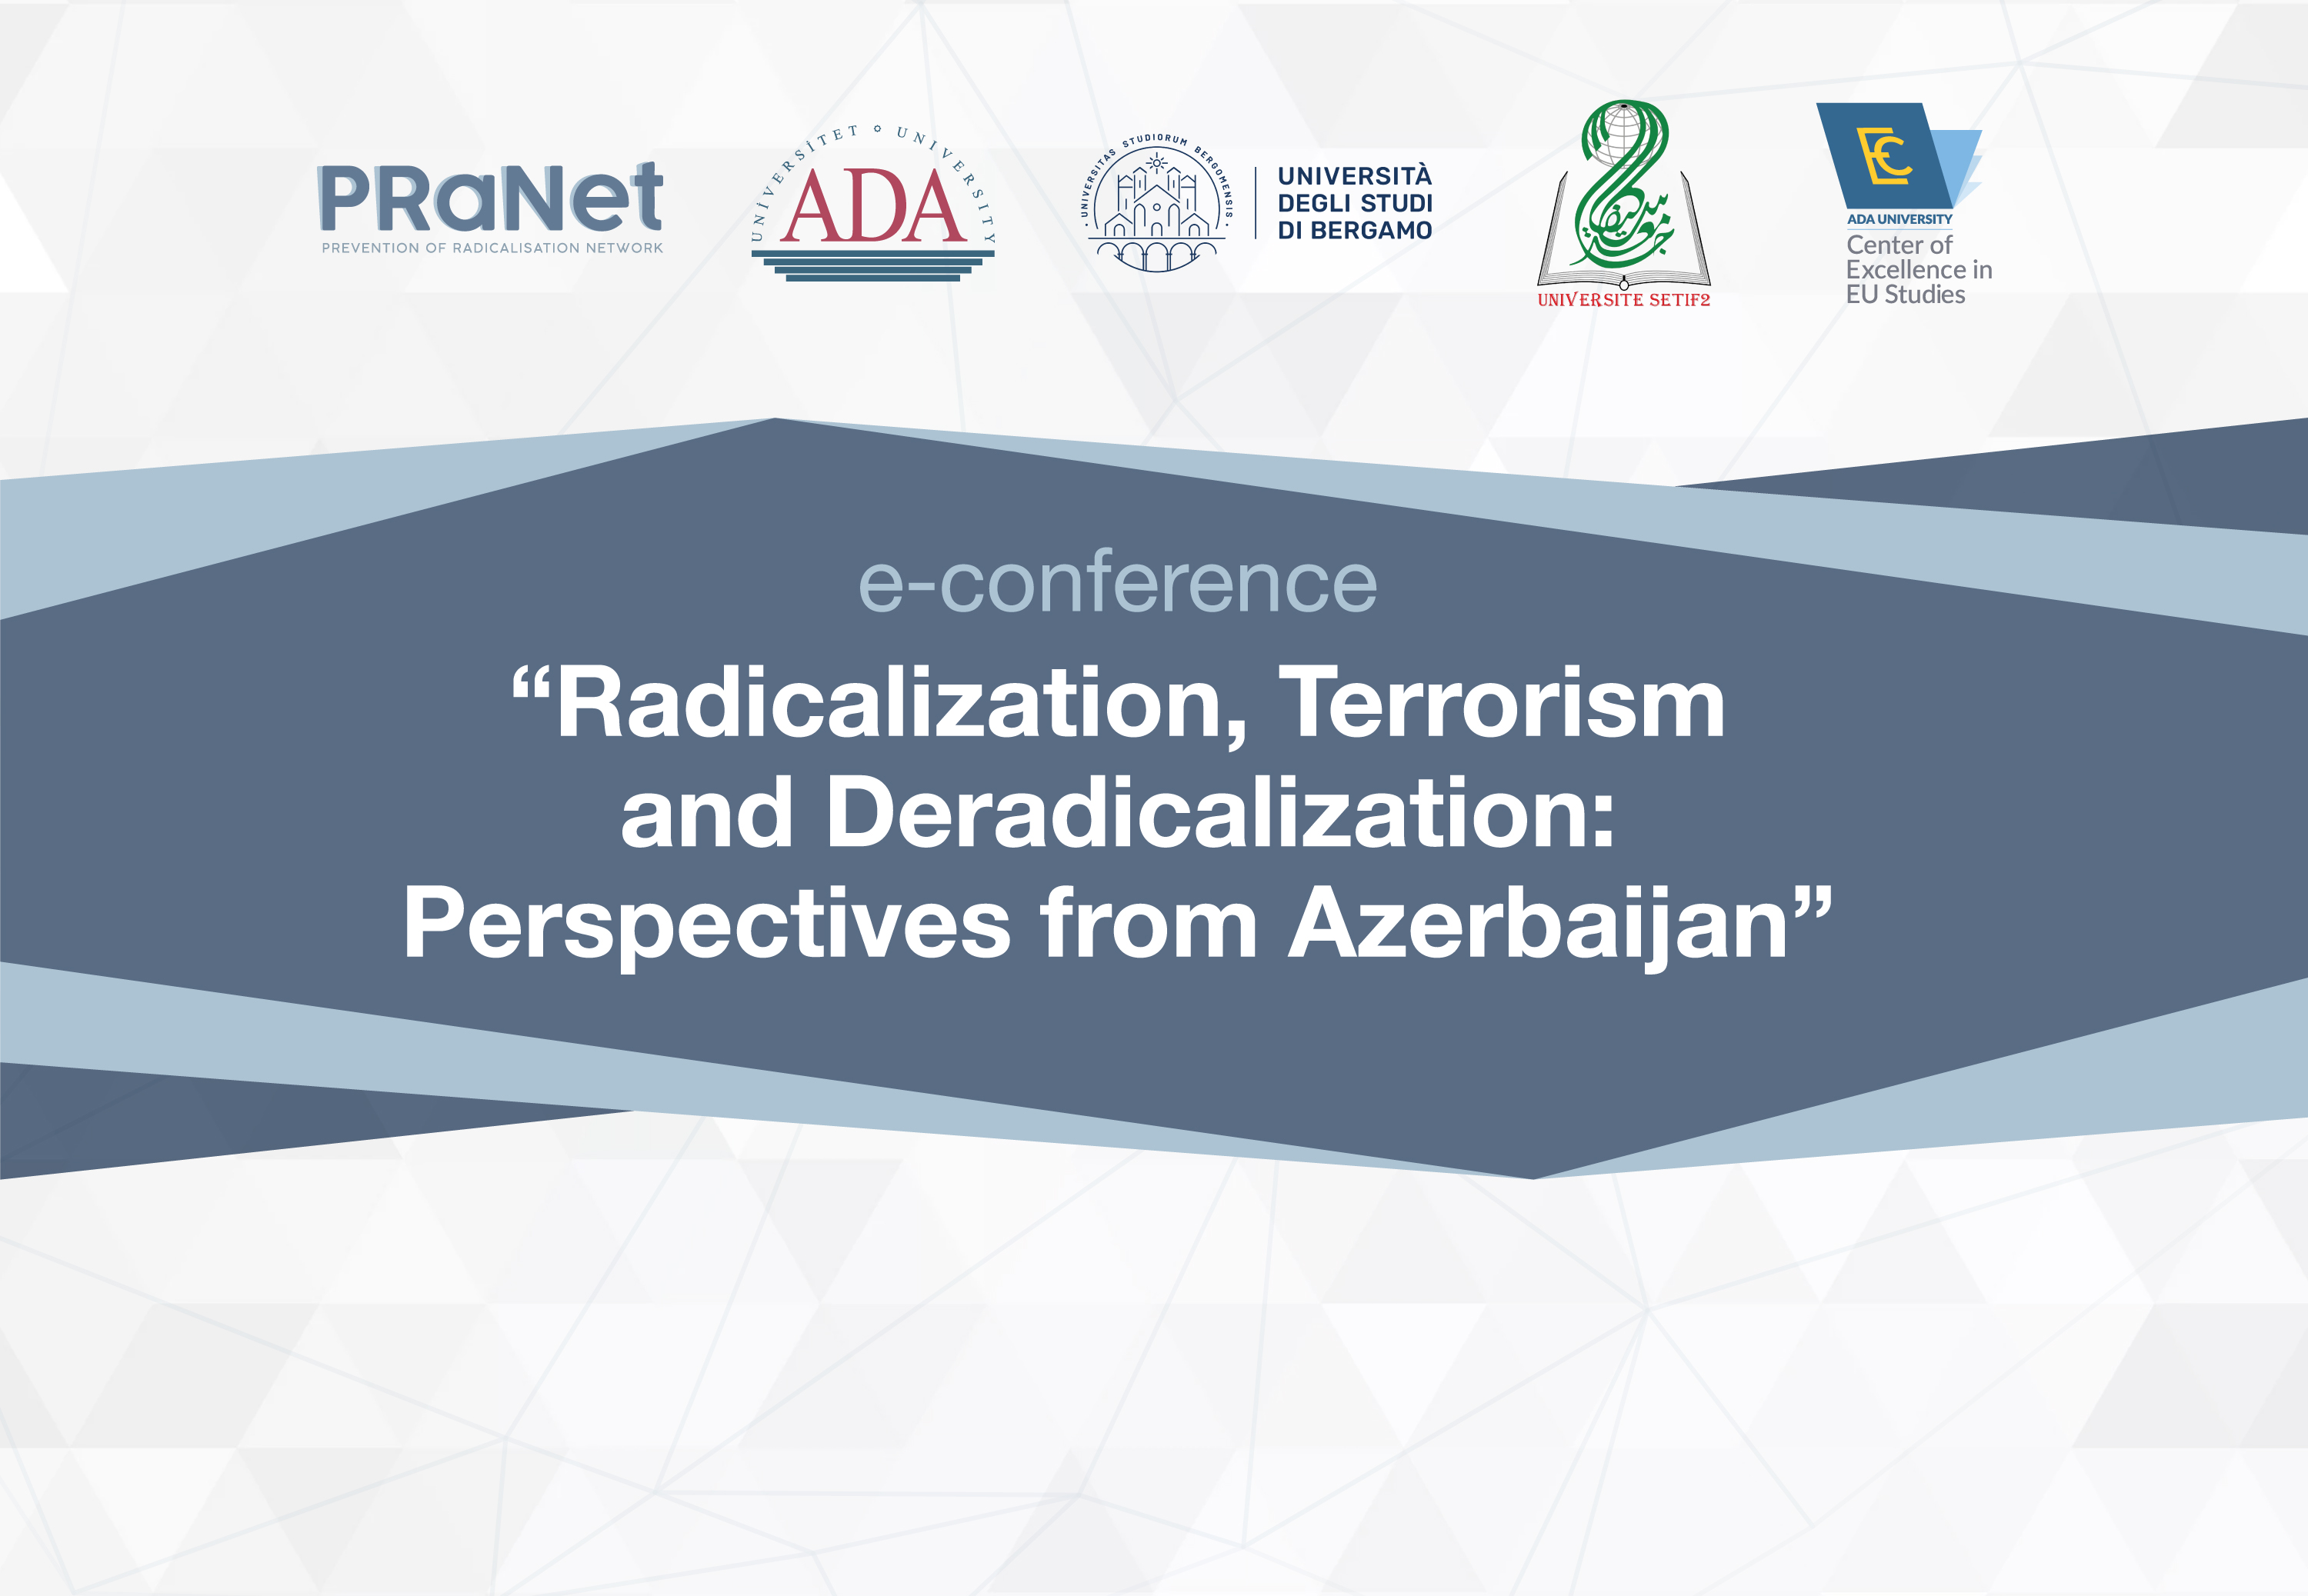 E-Conference on Radicalization, Terrorism and Radicalization: Perspective from Azerbaijan within PRaNet project